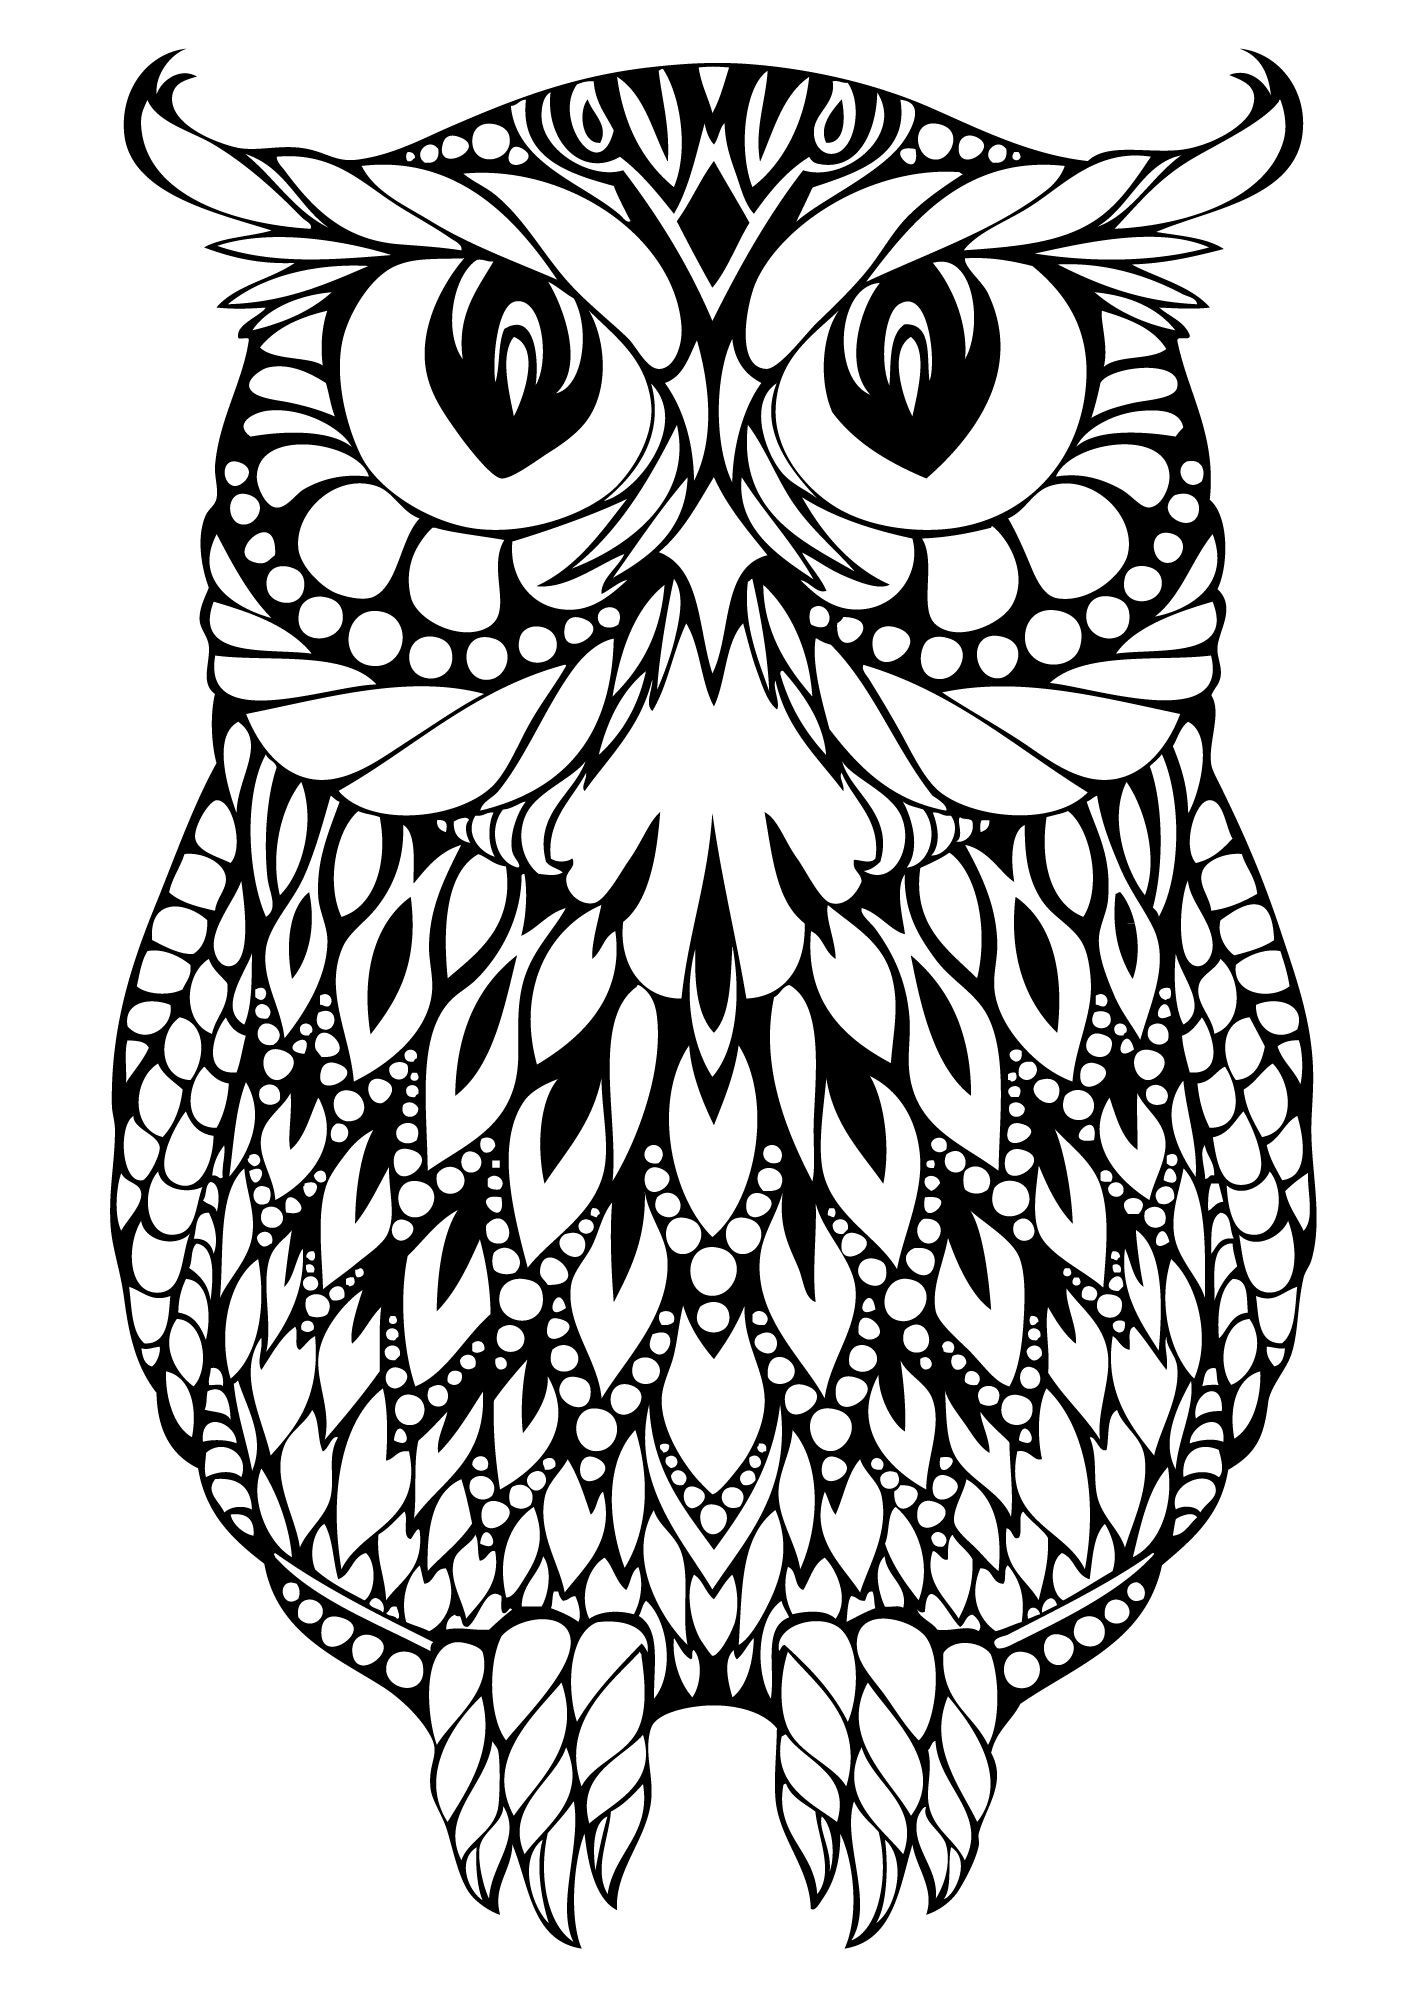 Christmas Coloring Pages Owls With Collection Of Adult Download Them And Try